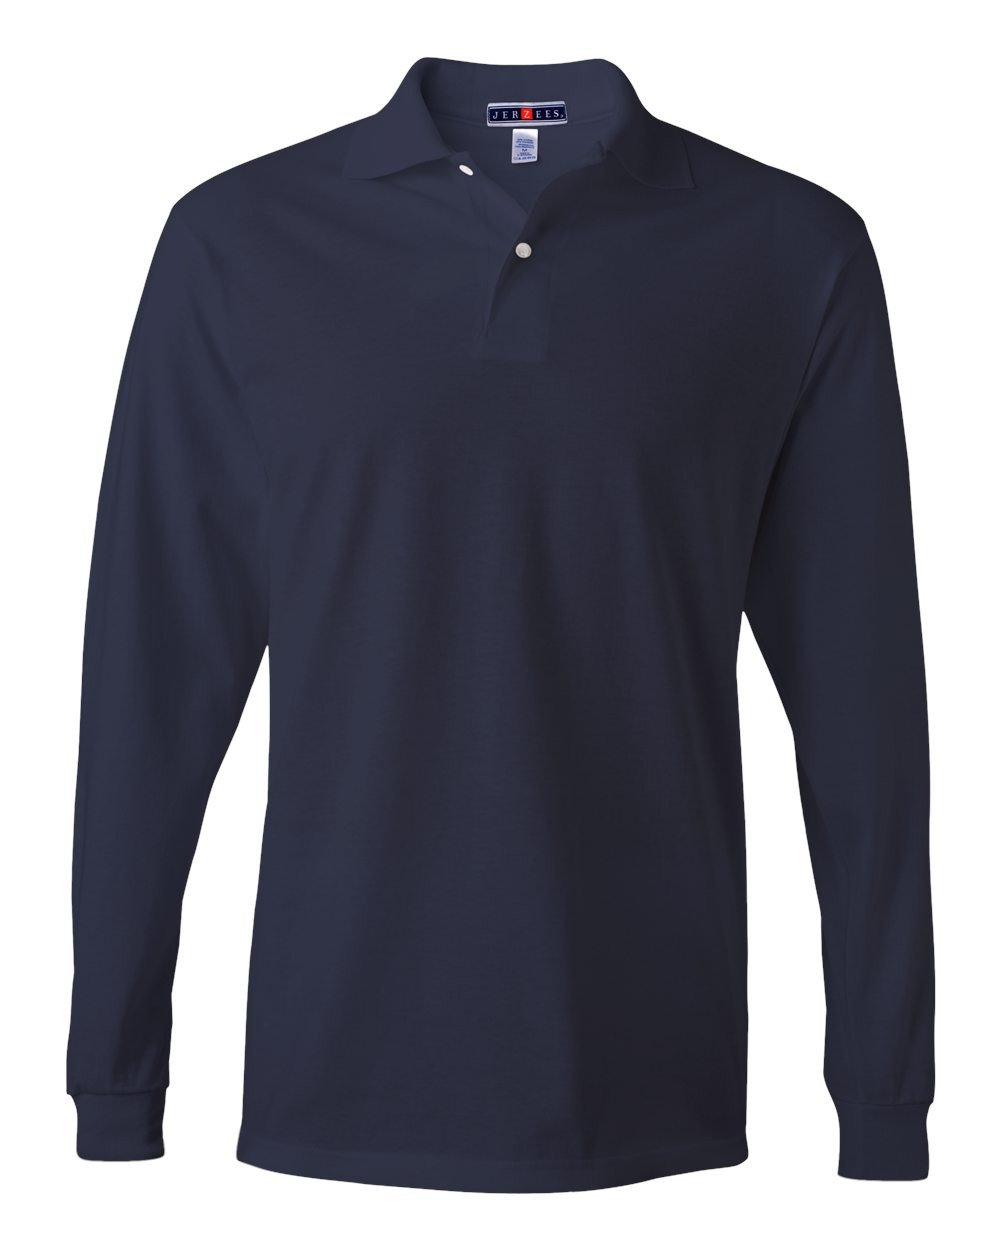 Jerzees Men's Jersey Long Sleeve Polo with Spotshield, J Navy, Large